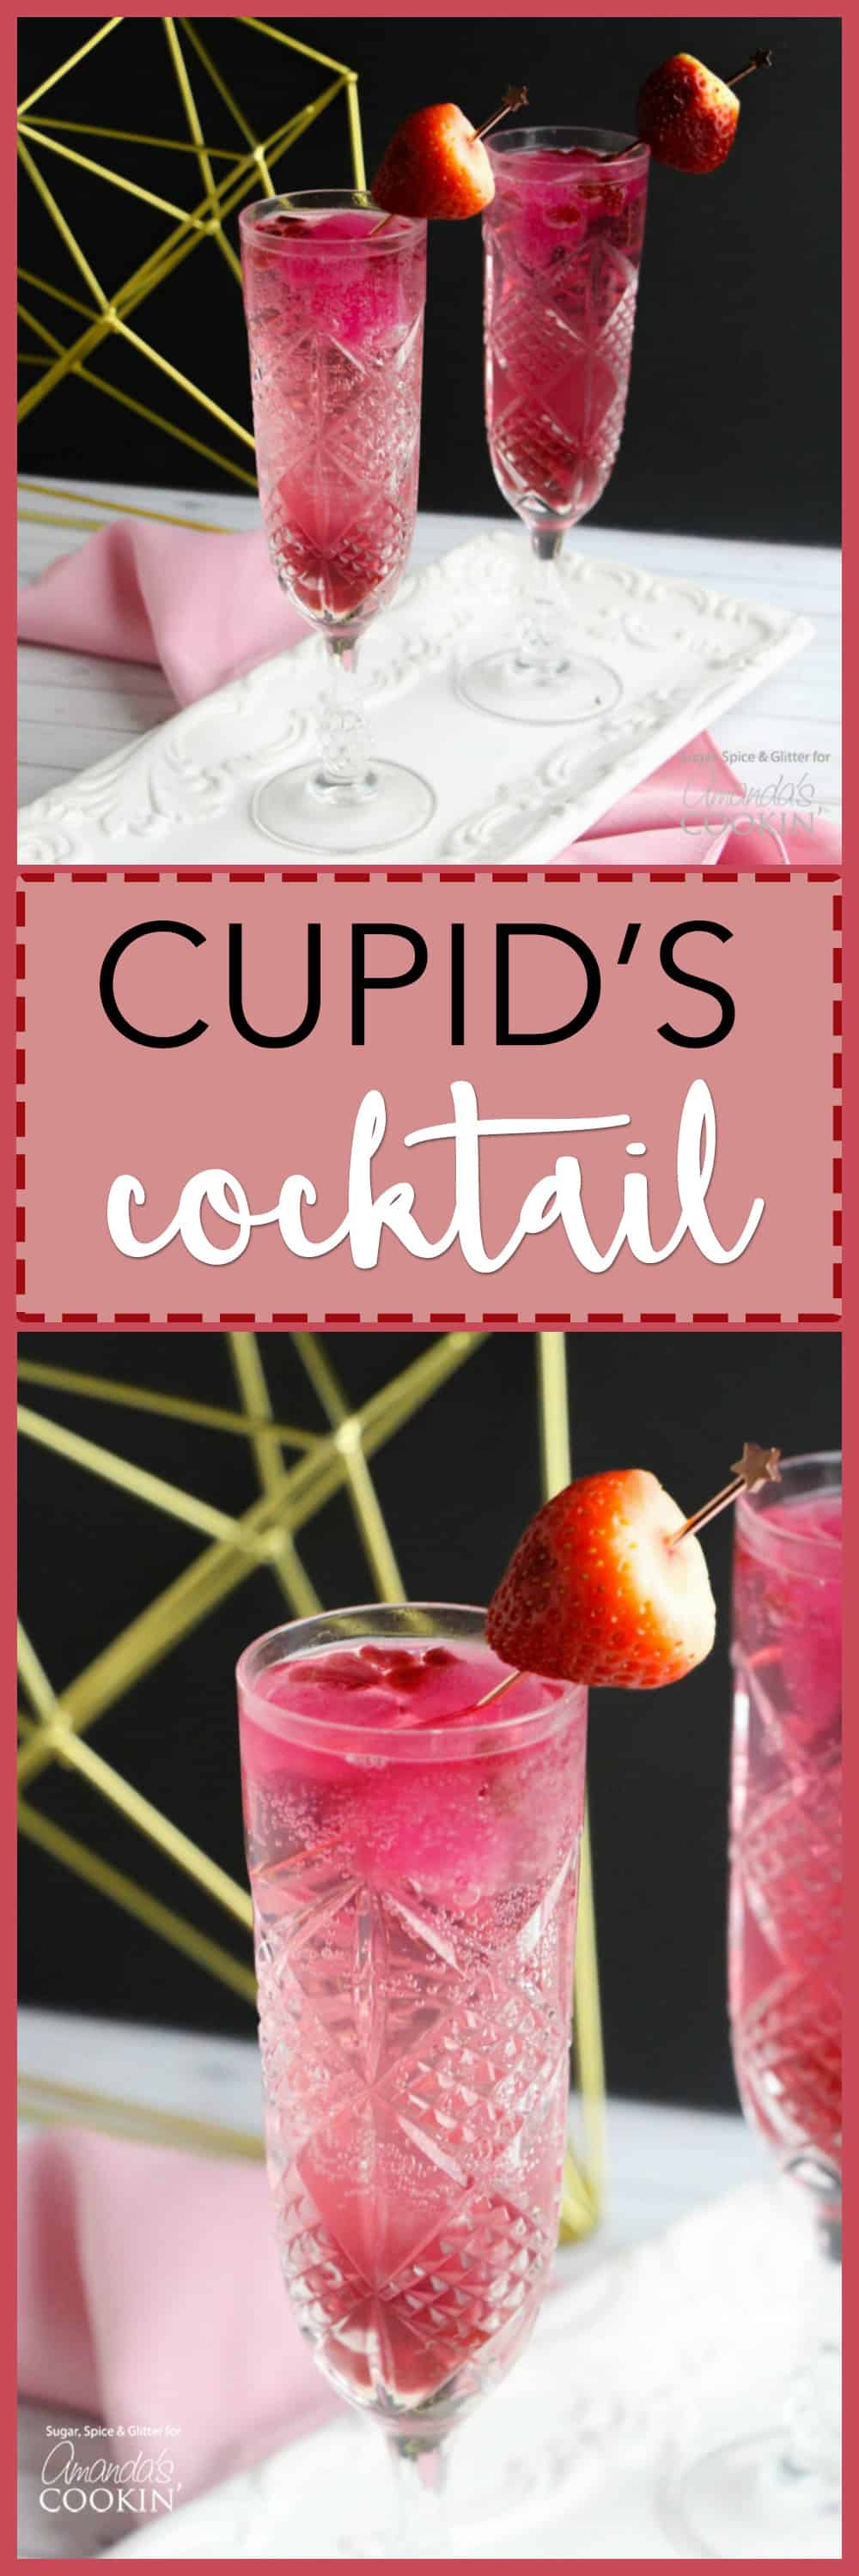 Cupid's Cocktail is the perfect drink for Valentine's Day. When you take strawberries and champagne and combine them, it doesn't get any better!